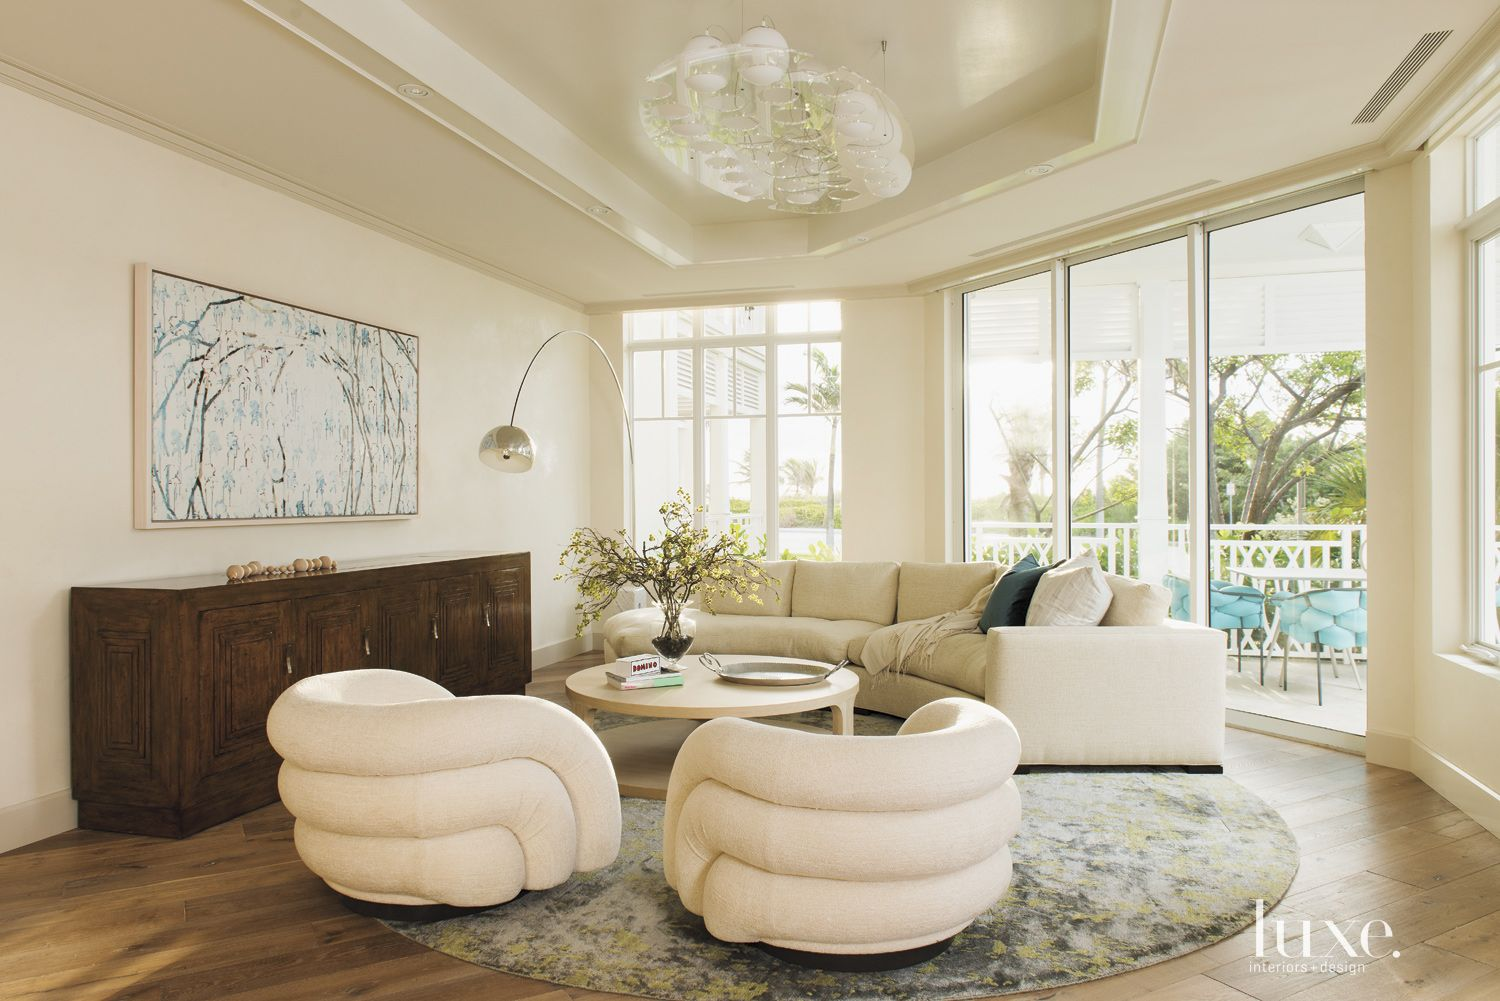 Eclectic Cream Living Room with Recessed Ceiling